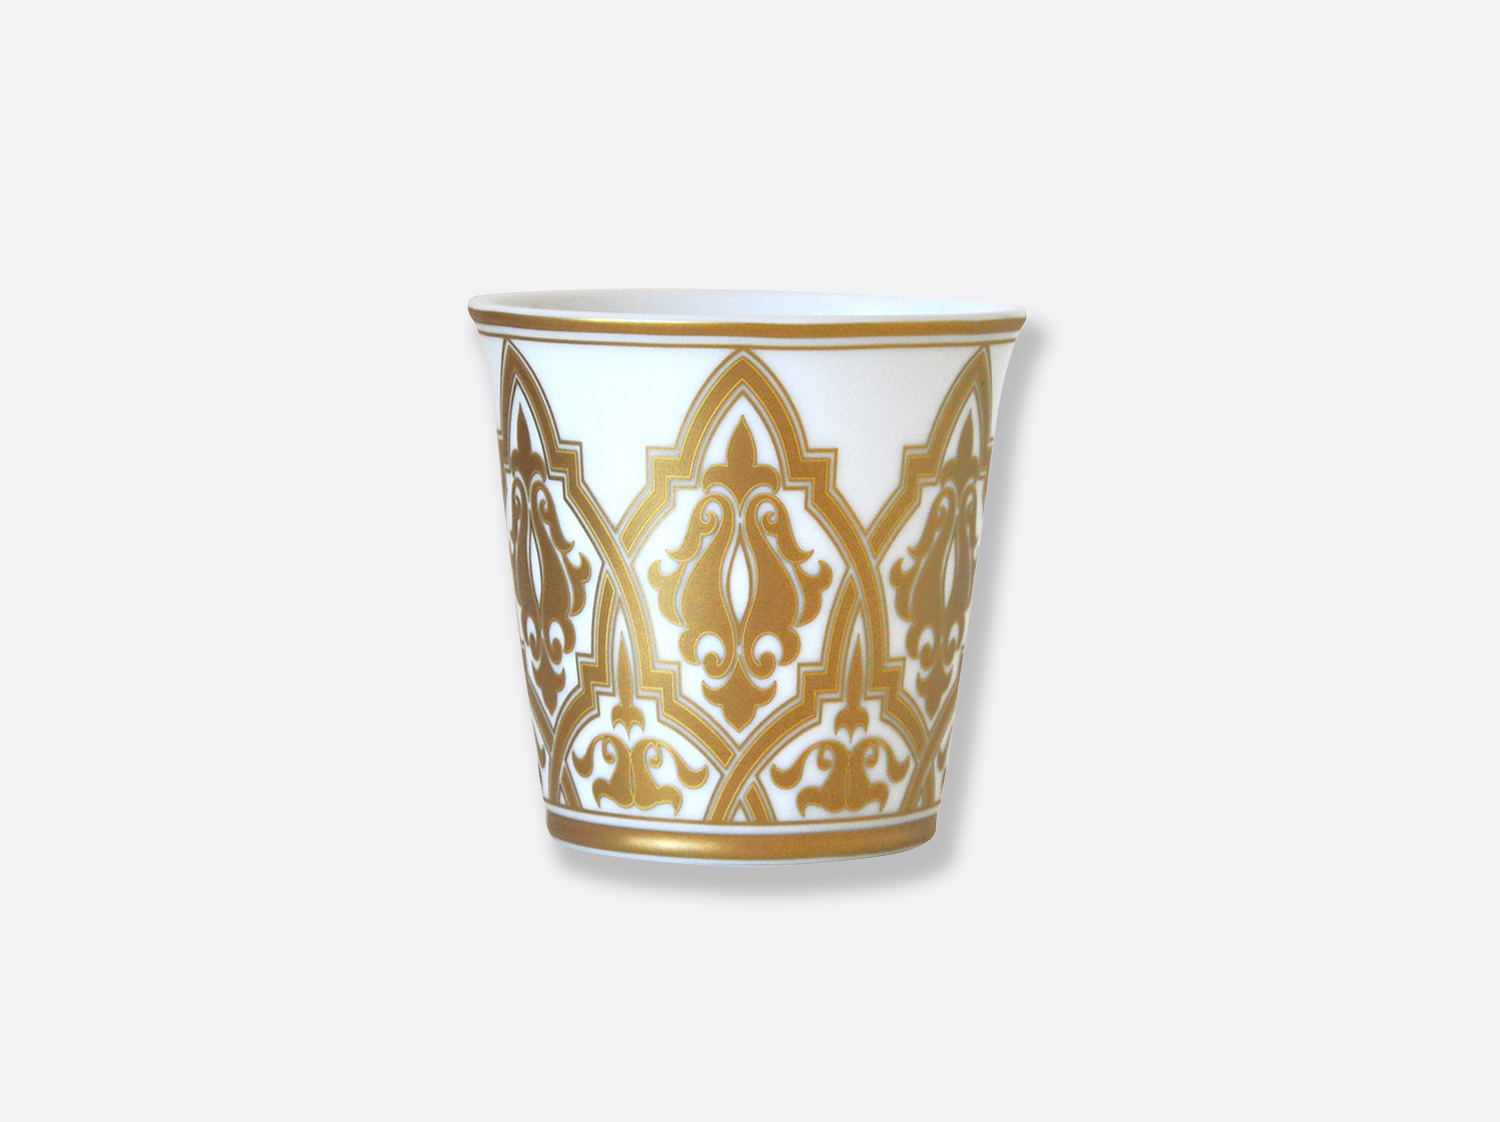 Pot 9 cm + bougie parfumée 200g en porcelaine de la collection Venise Bernardaud